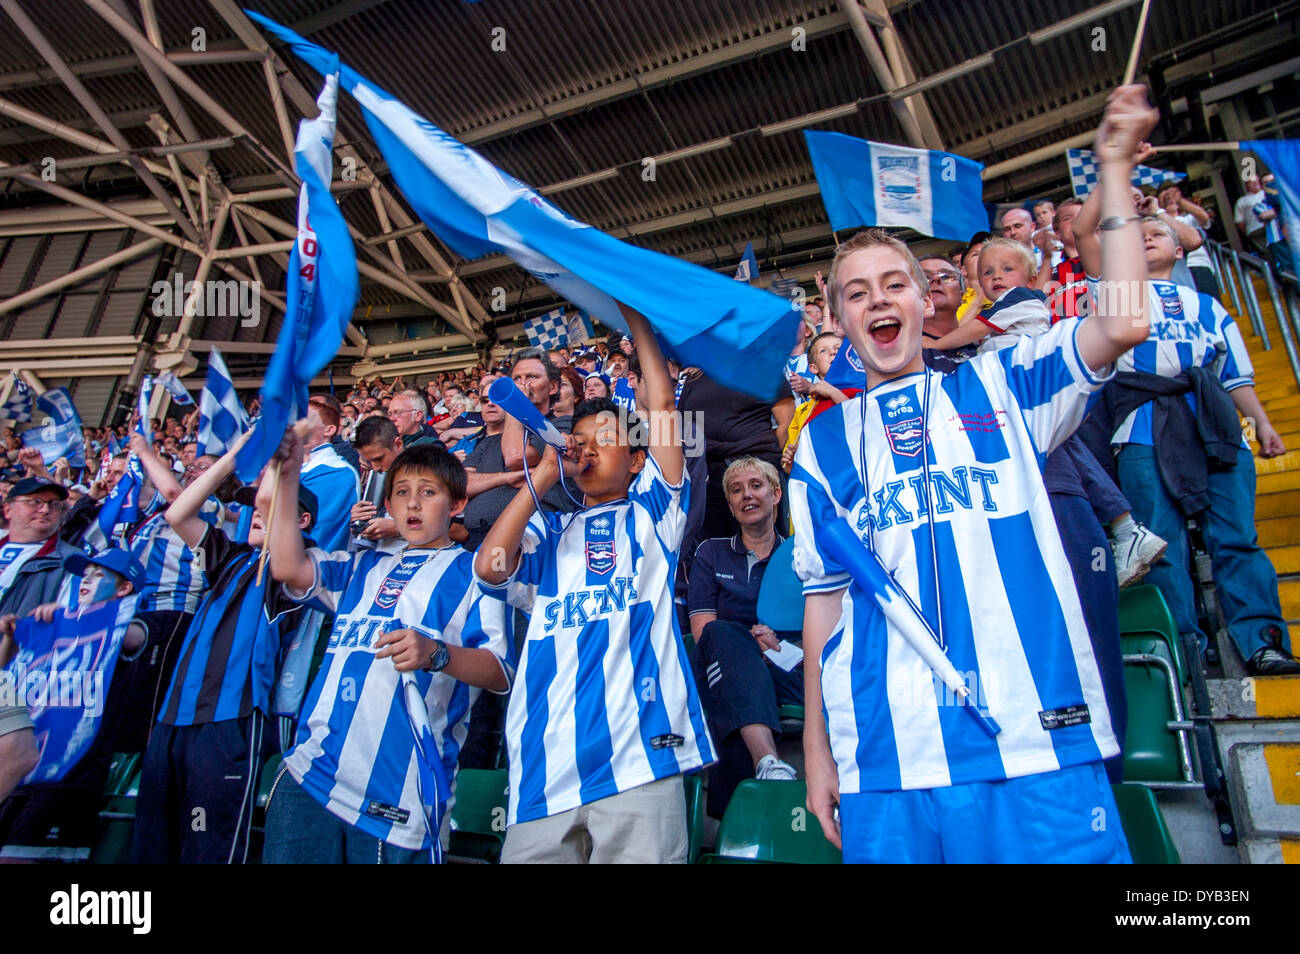 Brighton & Hove Albion fans at the Division 1 play-off final at The Millennium Stadium, Cardiff, Wales in 2004 - Stock Image